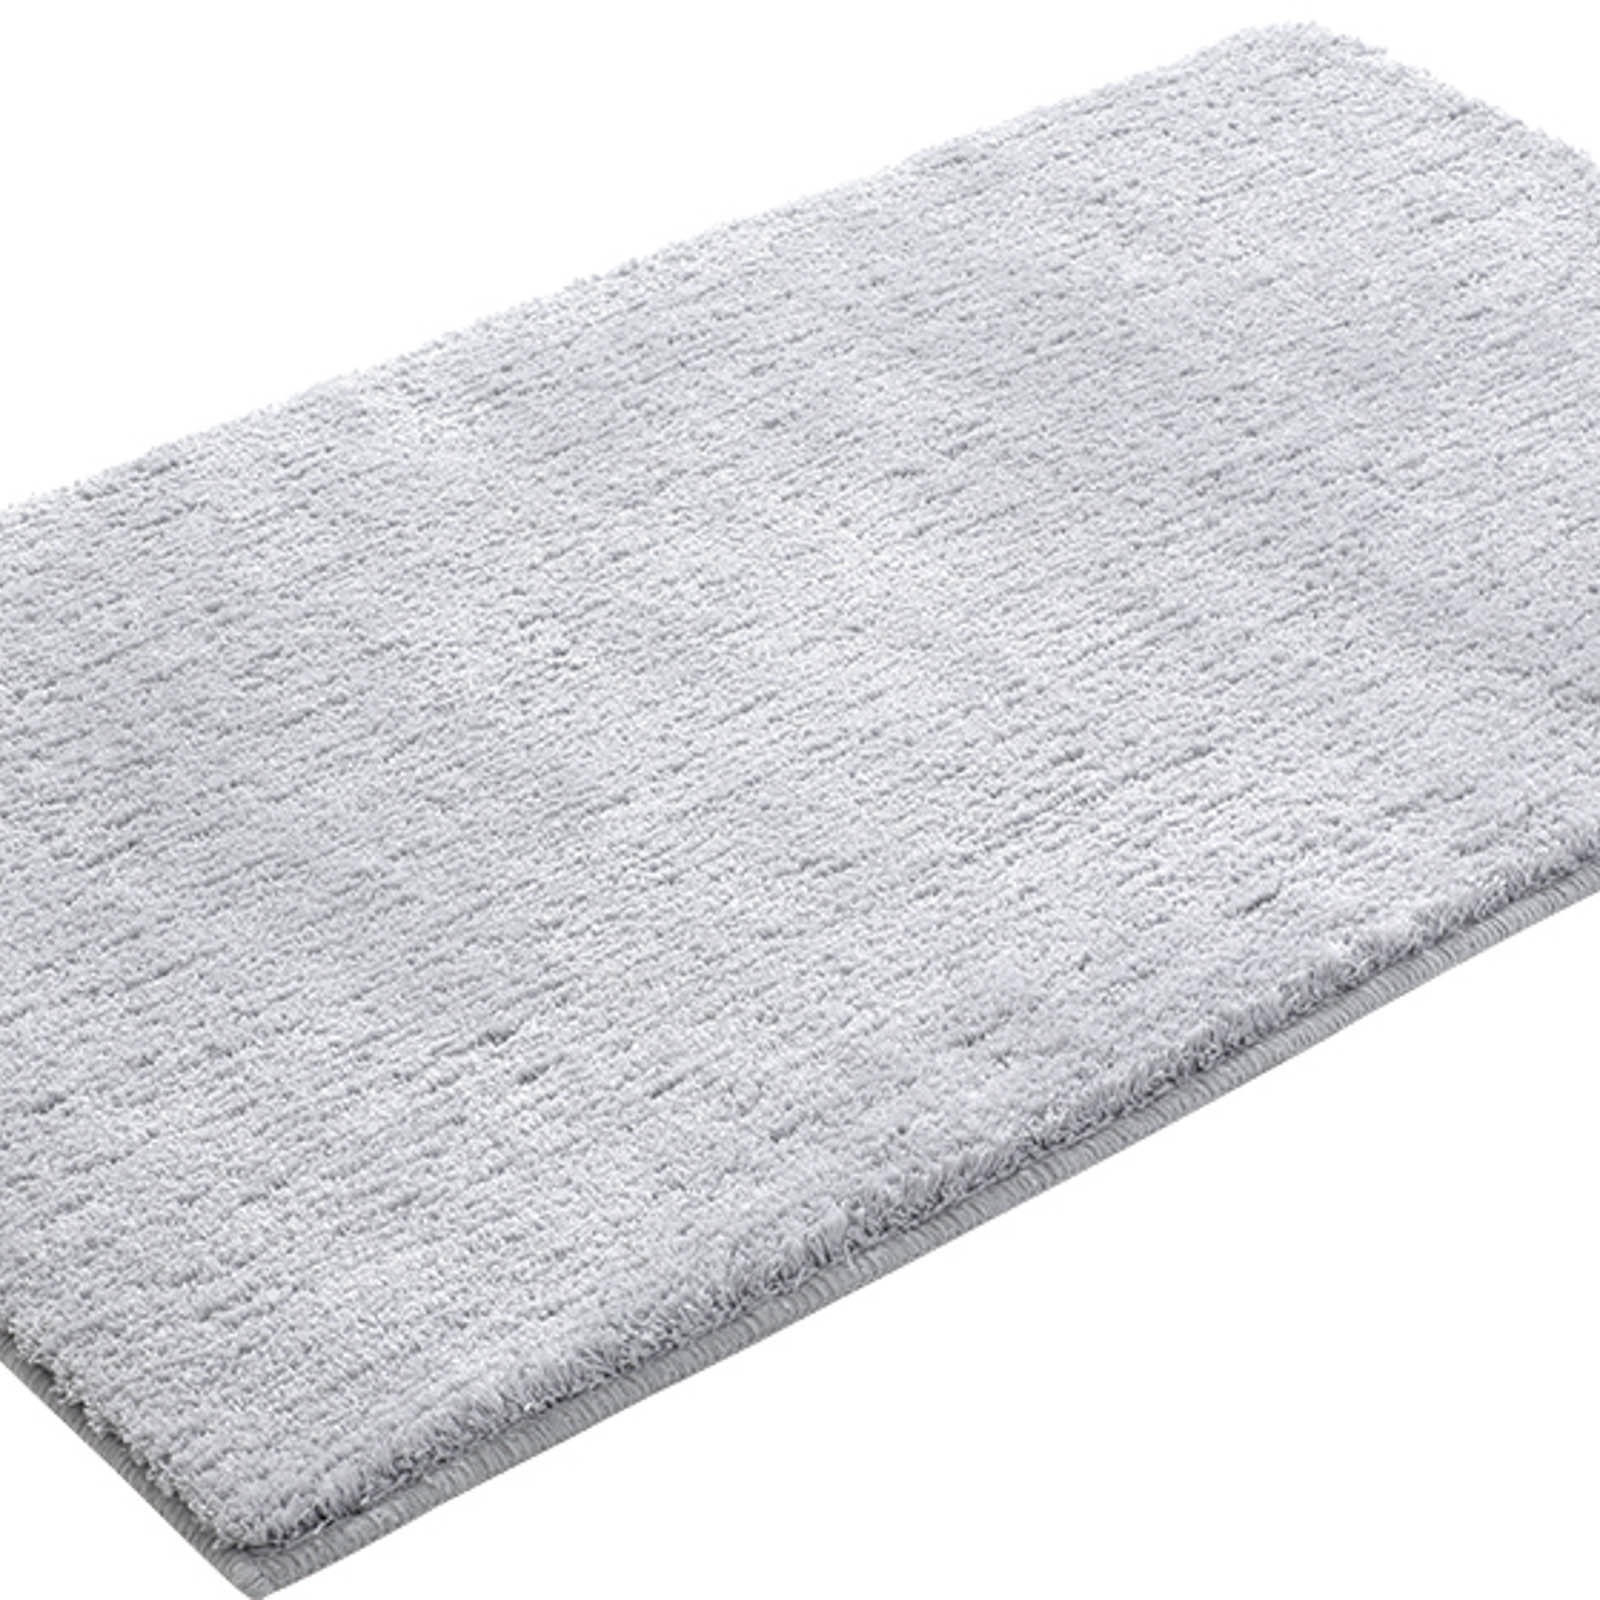 Softy Bath Mats 2371 08 in Grey